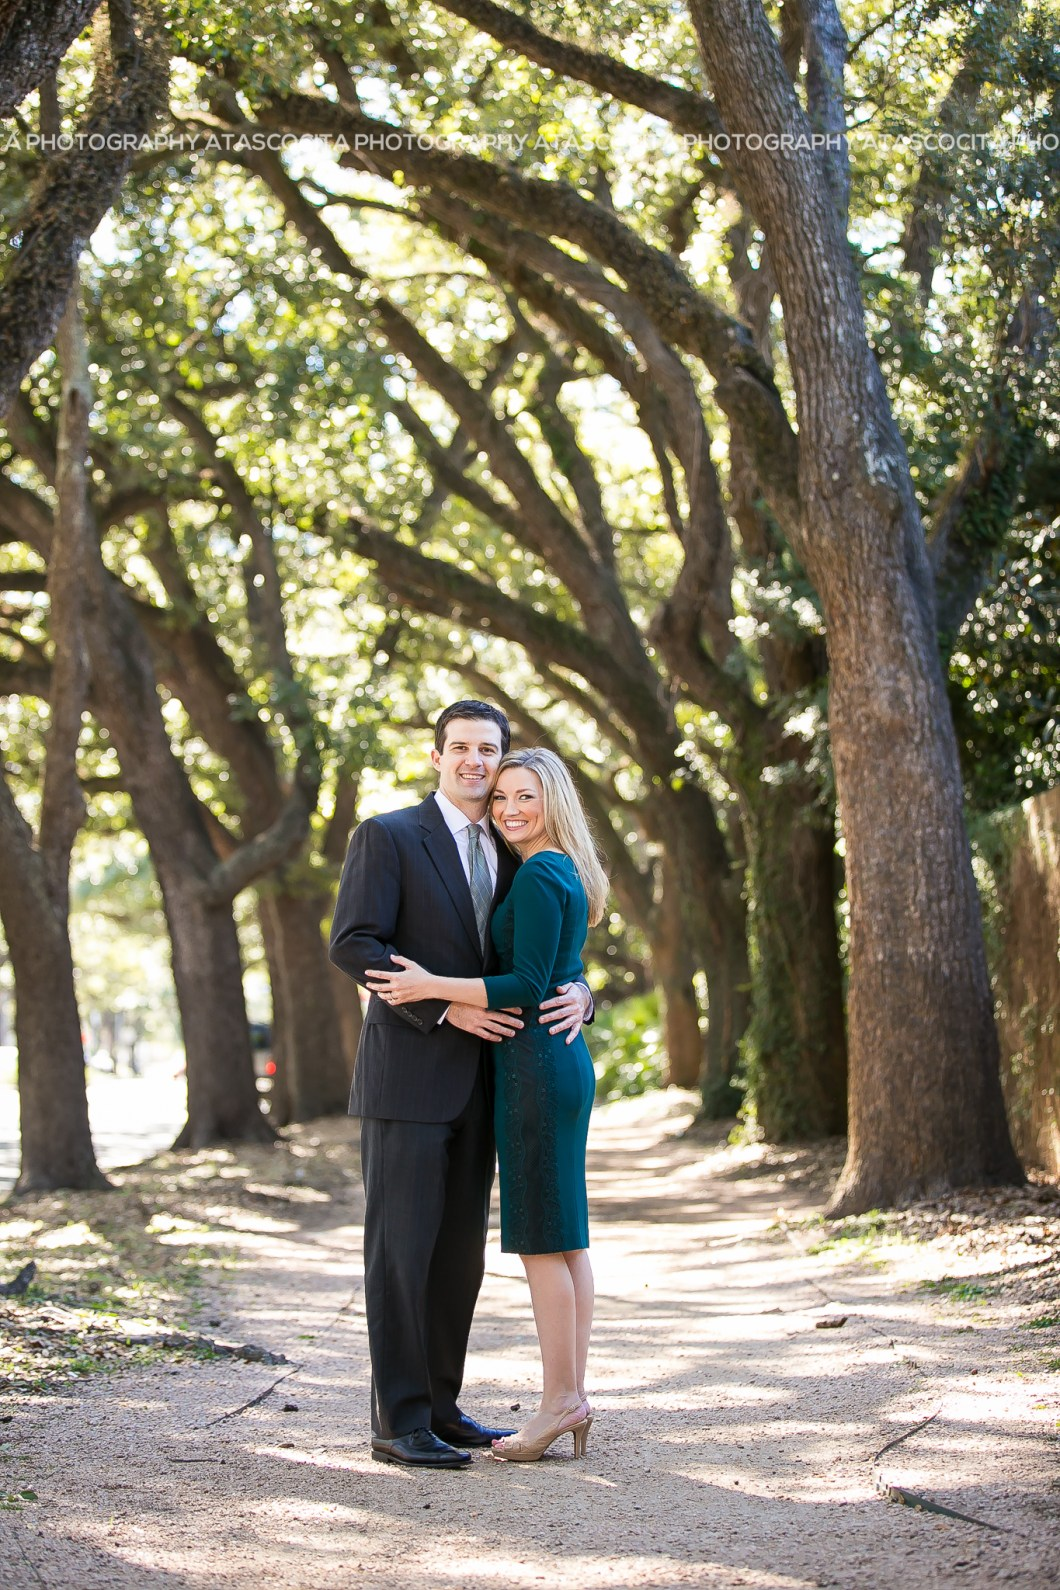 7Stacy-Gavin-Engagement-Atascocita-Photography